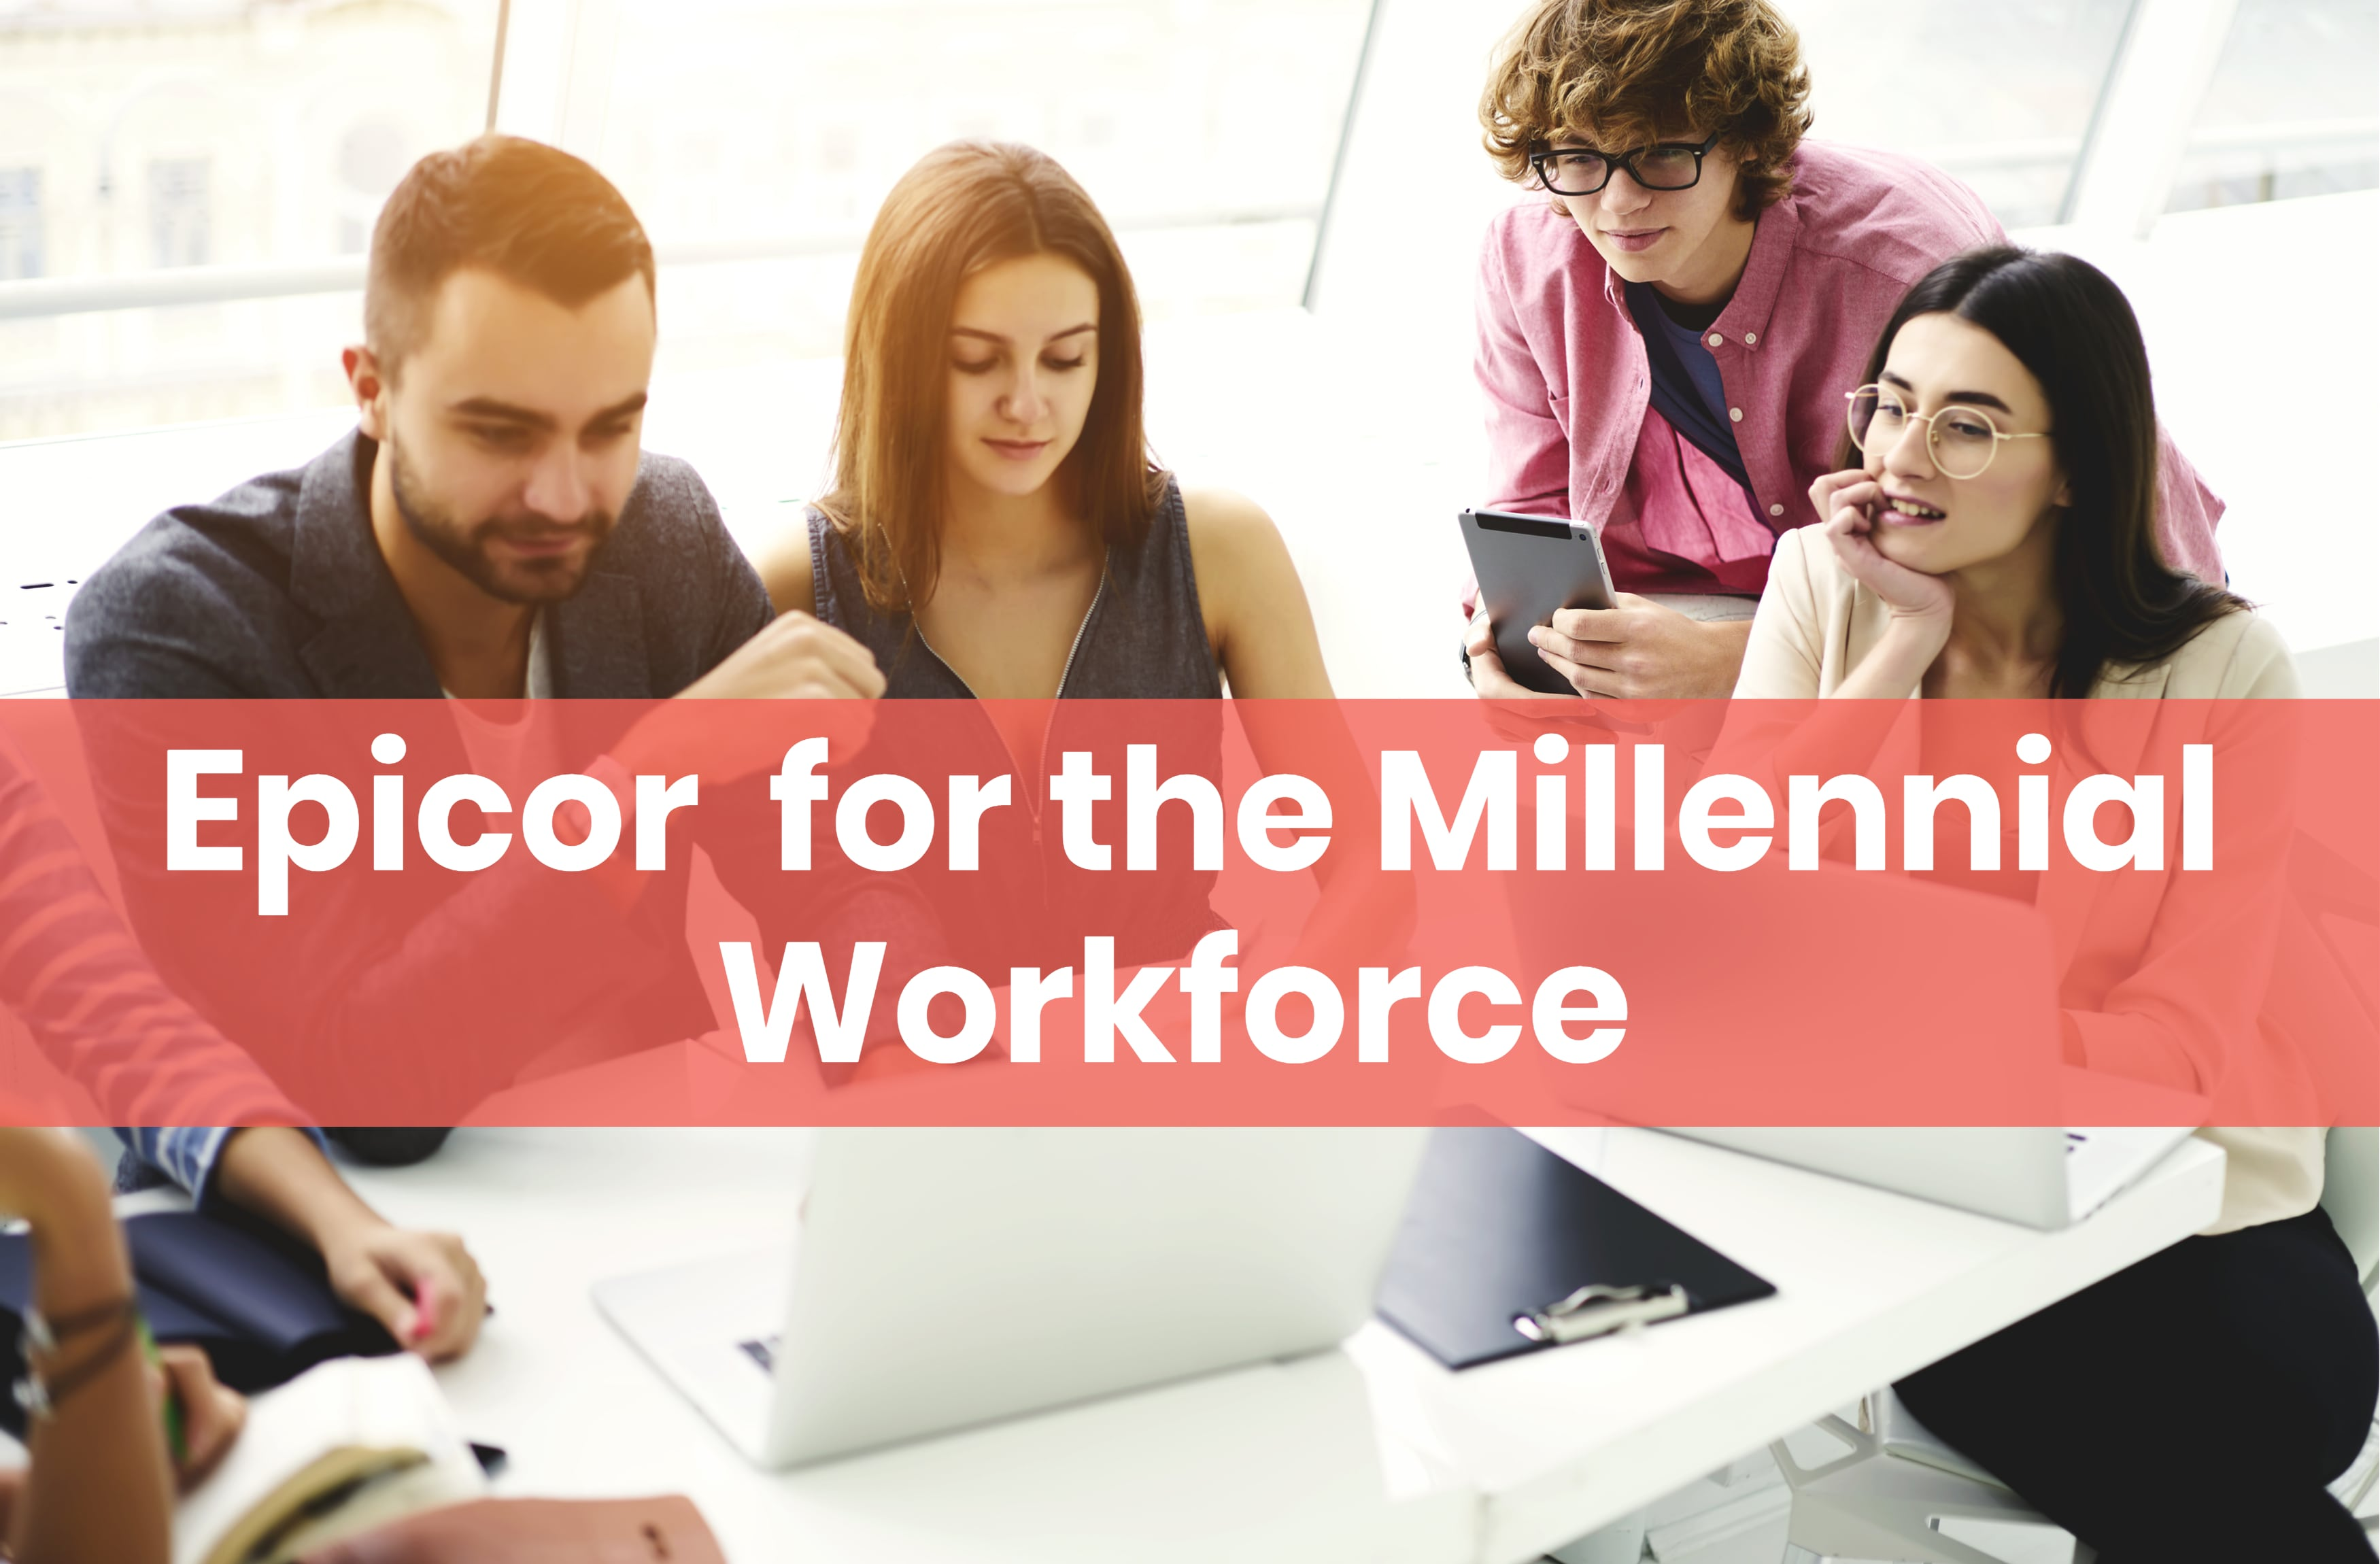 How Epicor ERP Appeals to the Millennial Workforce